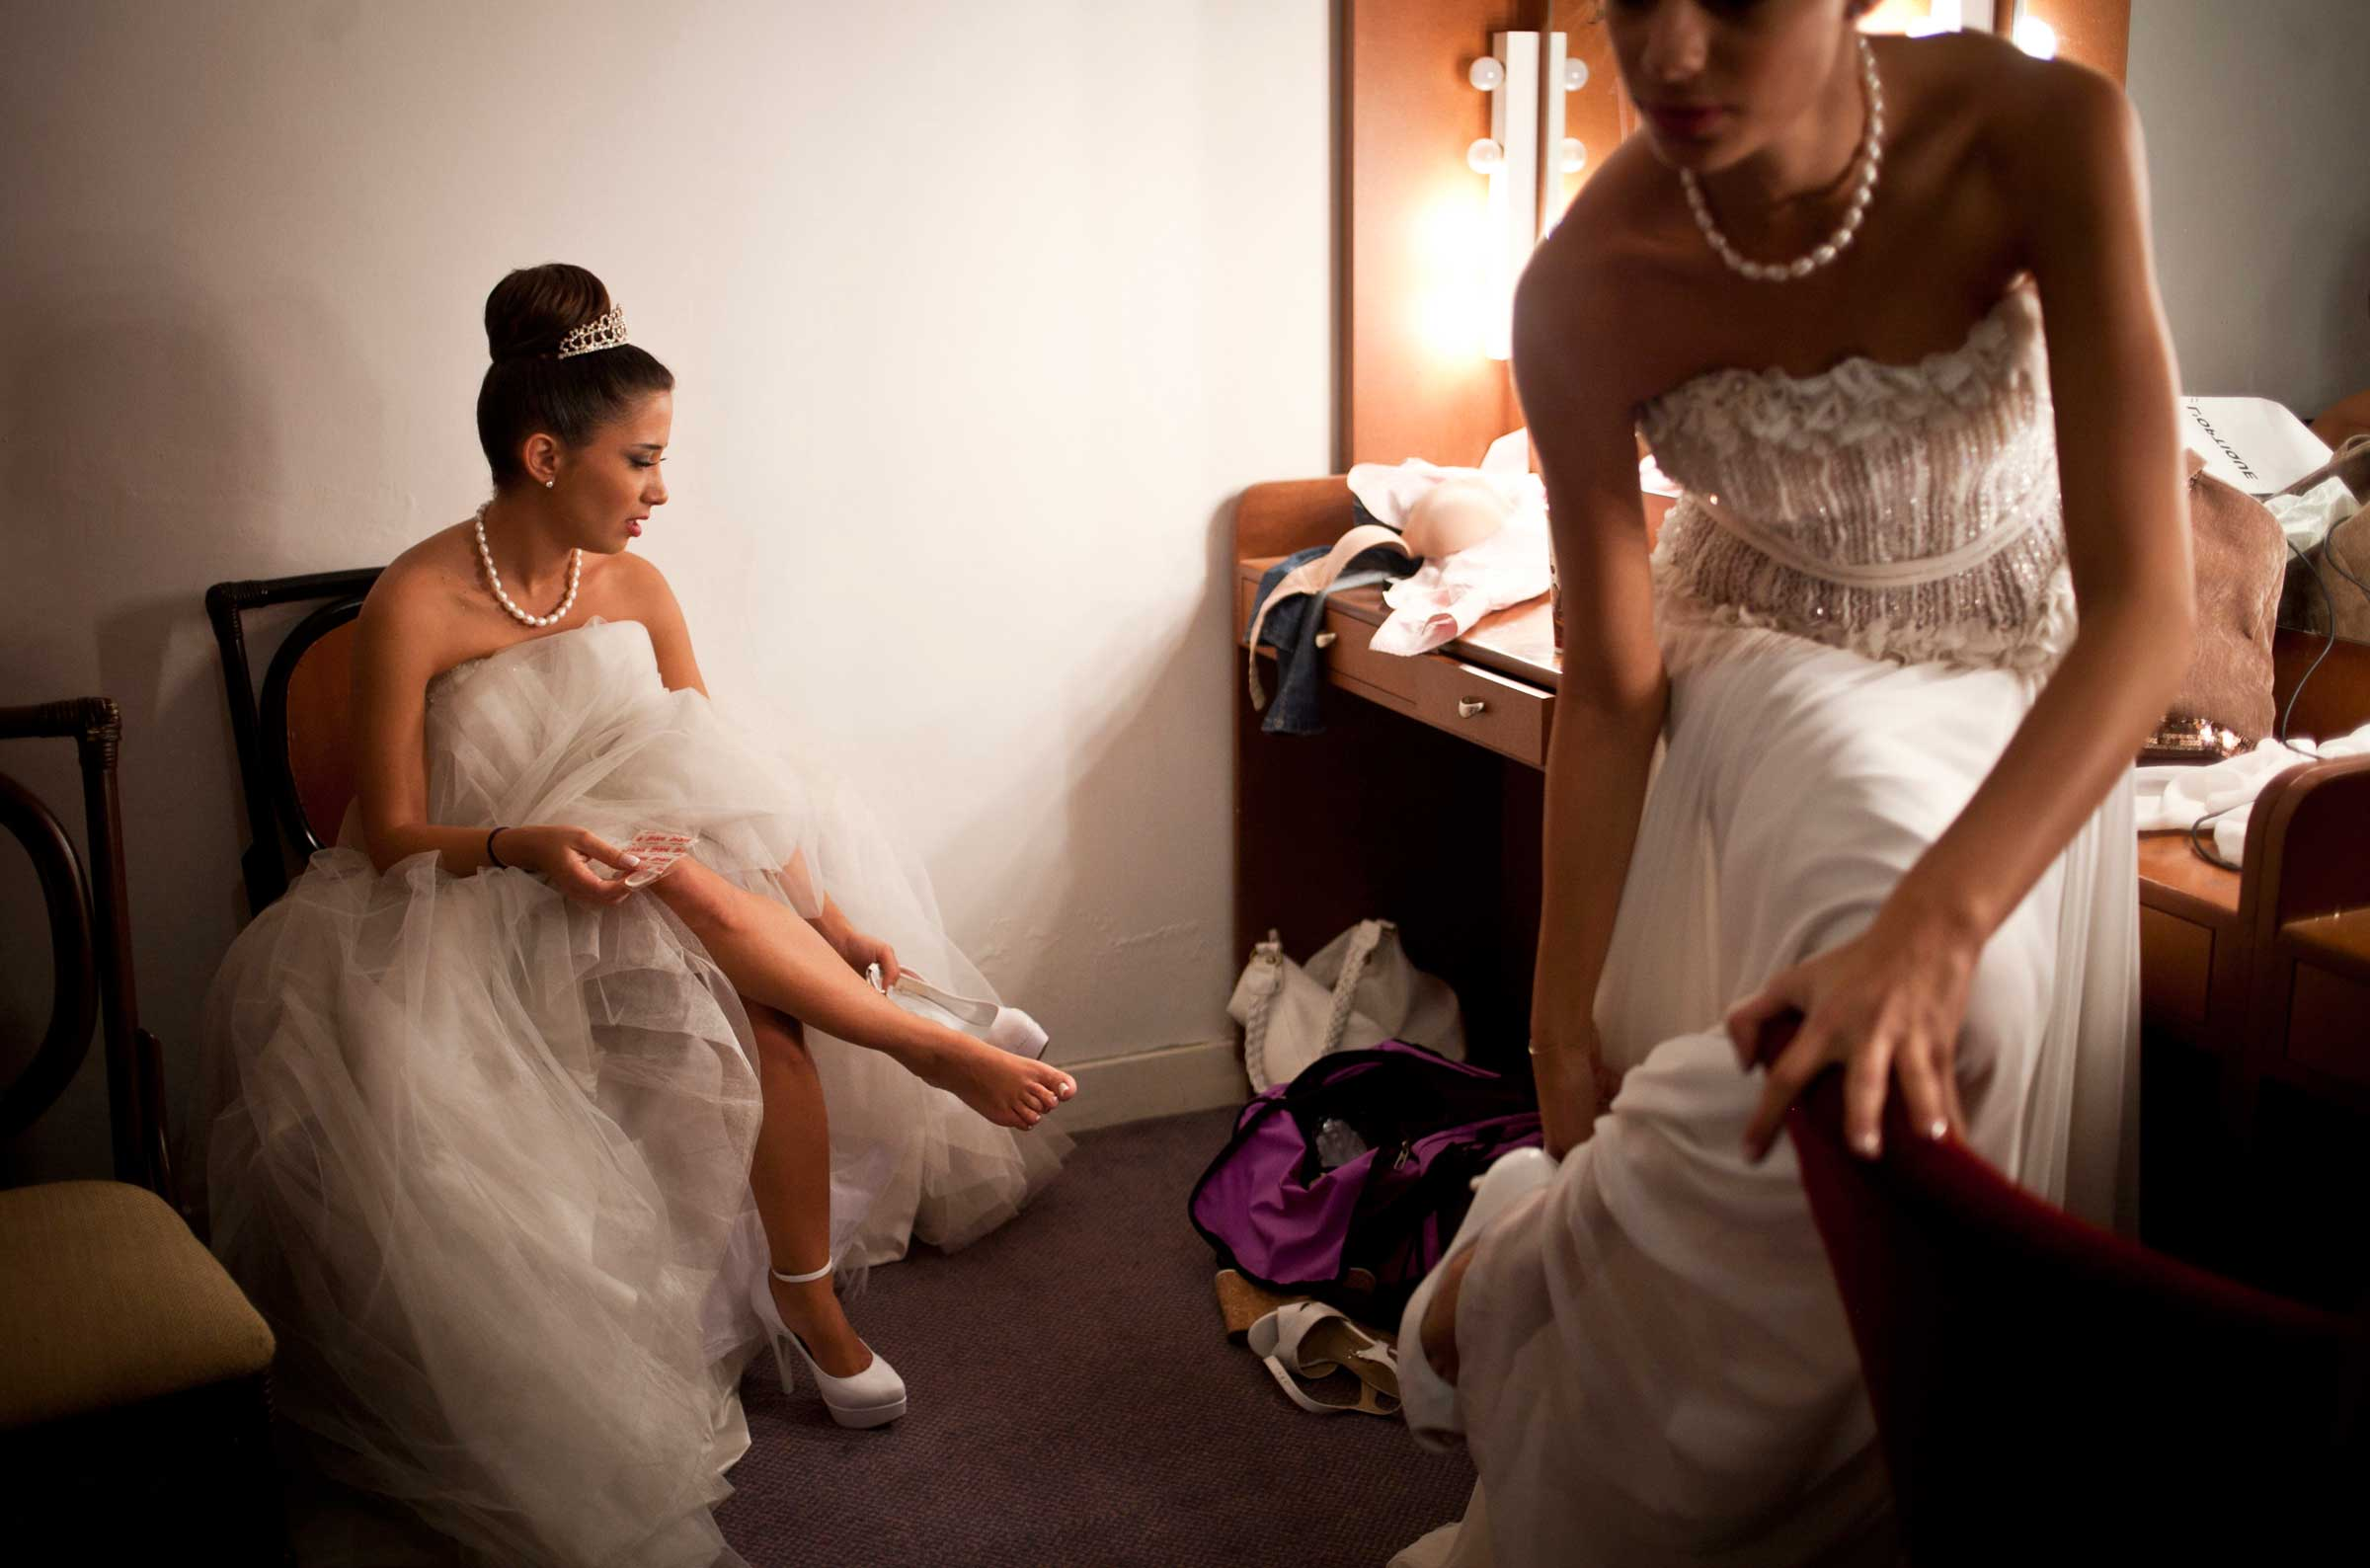 Dima Arabi, the oldest Debutante participant, 24, after her hair and make up has been applied, puts her dancing shoes on in the communal dressing room, before the Ball.